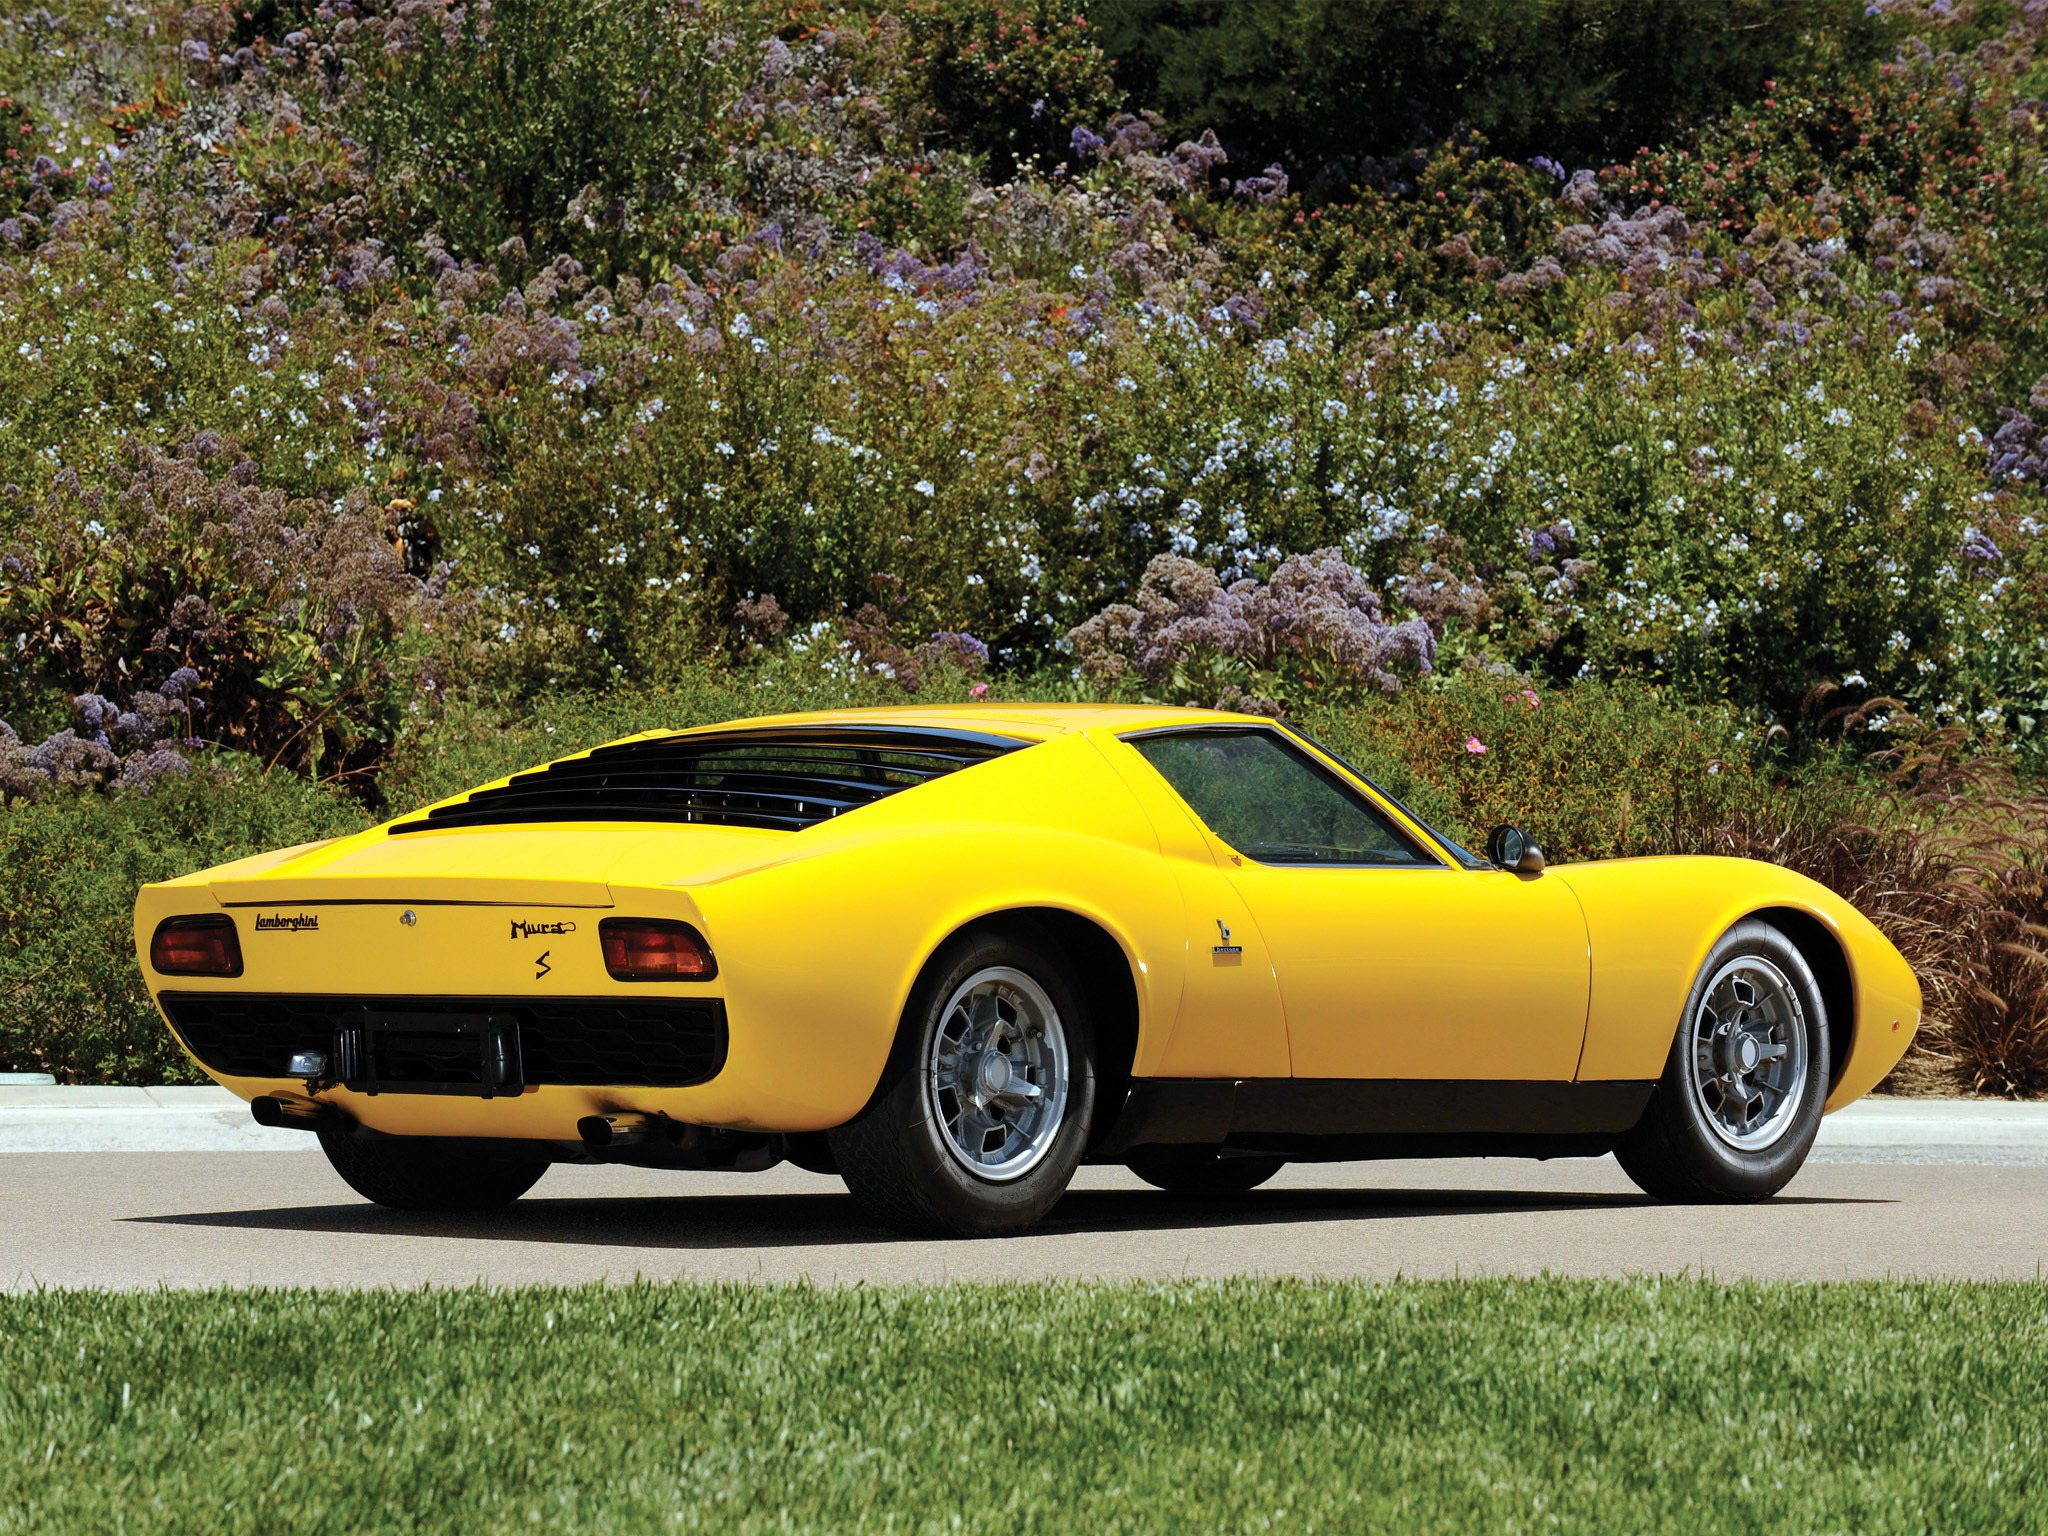 cars Lamborghini Miura yellow HD Wallpaper